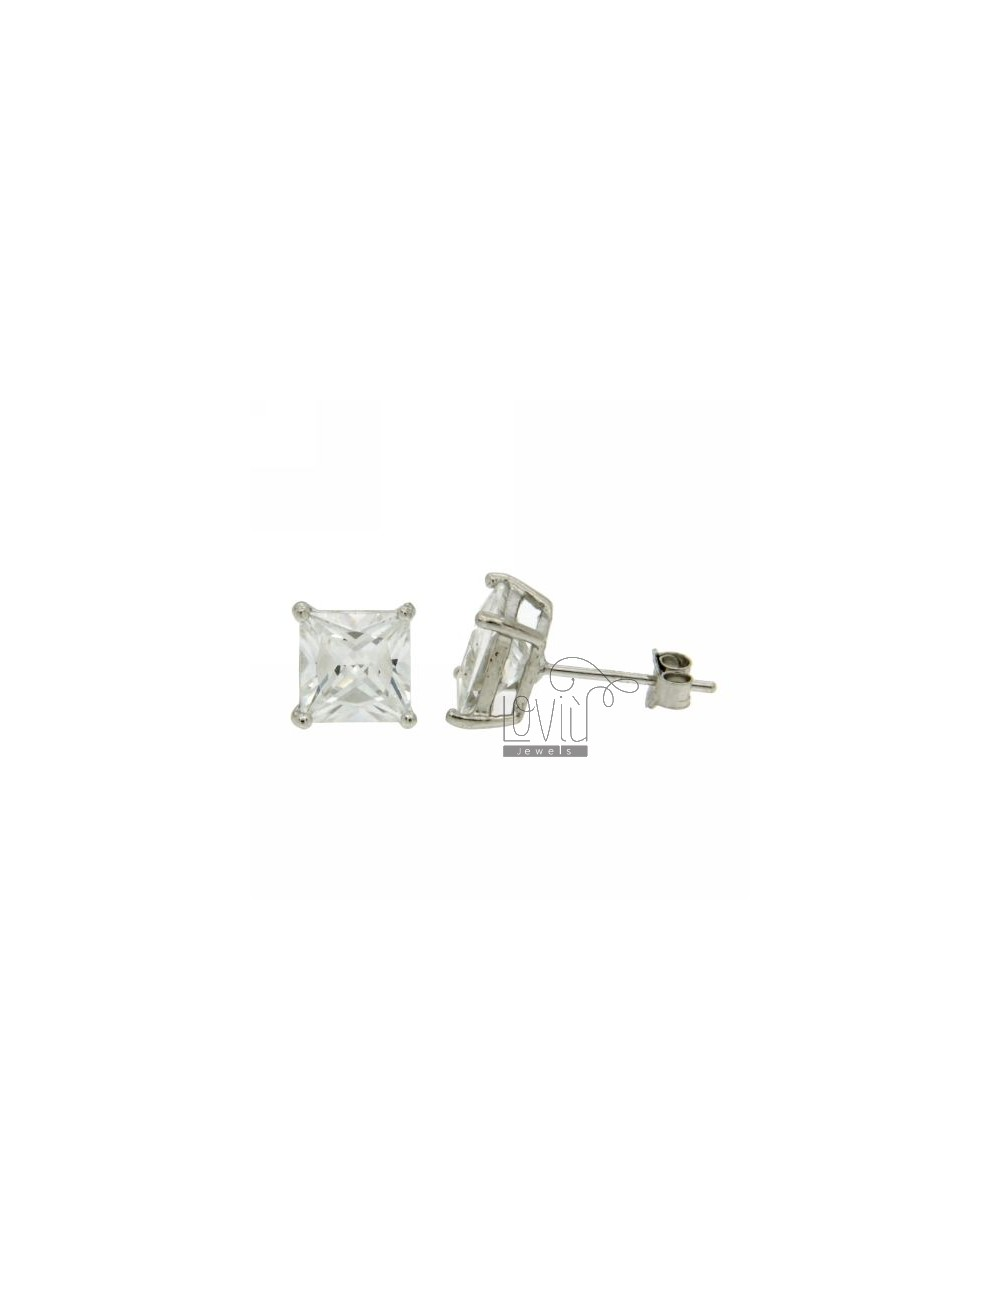 ZIRCON EARRINGS WITH WHITE SQUARE 7X7 MM IN RHODIUM AG TIT 925